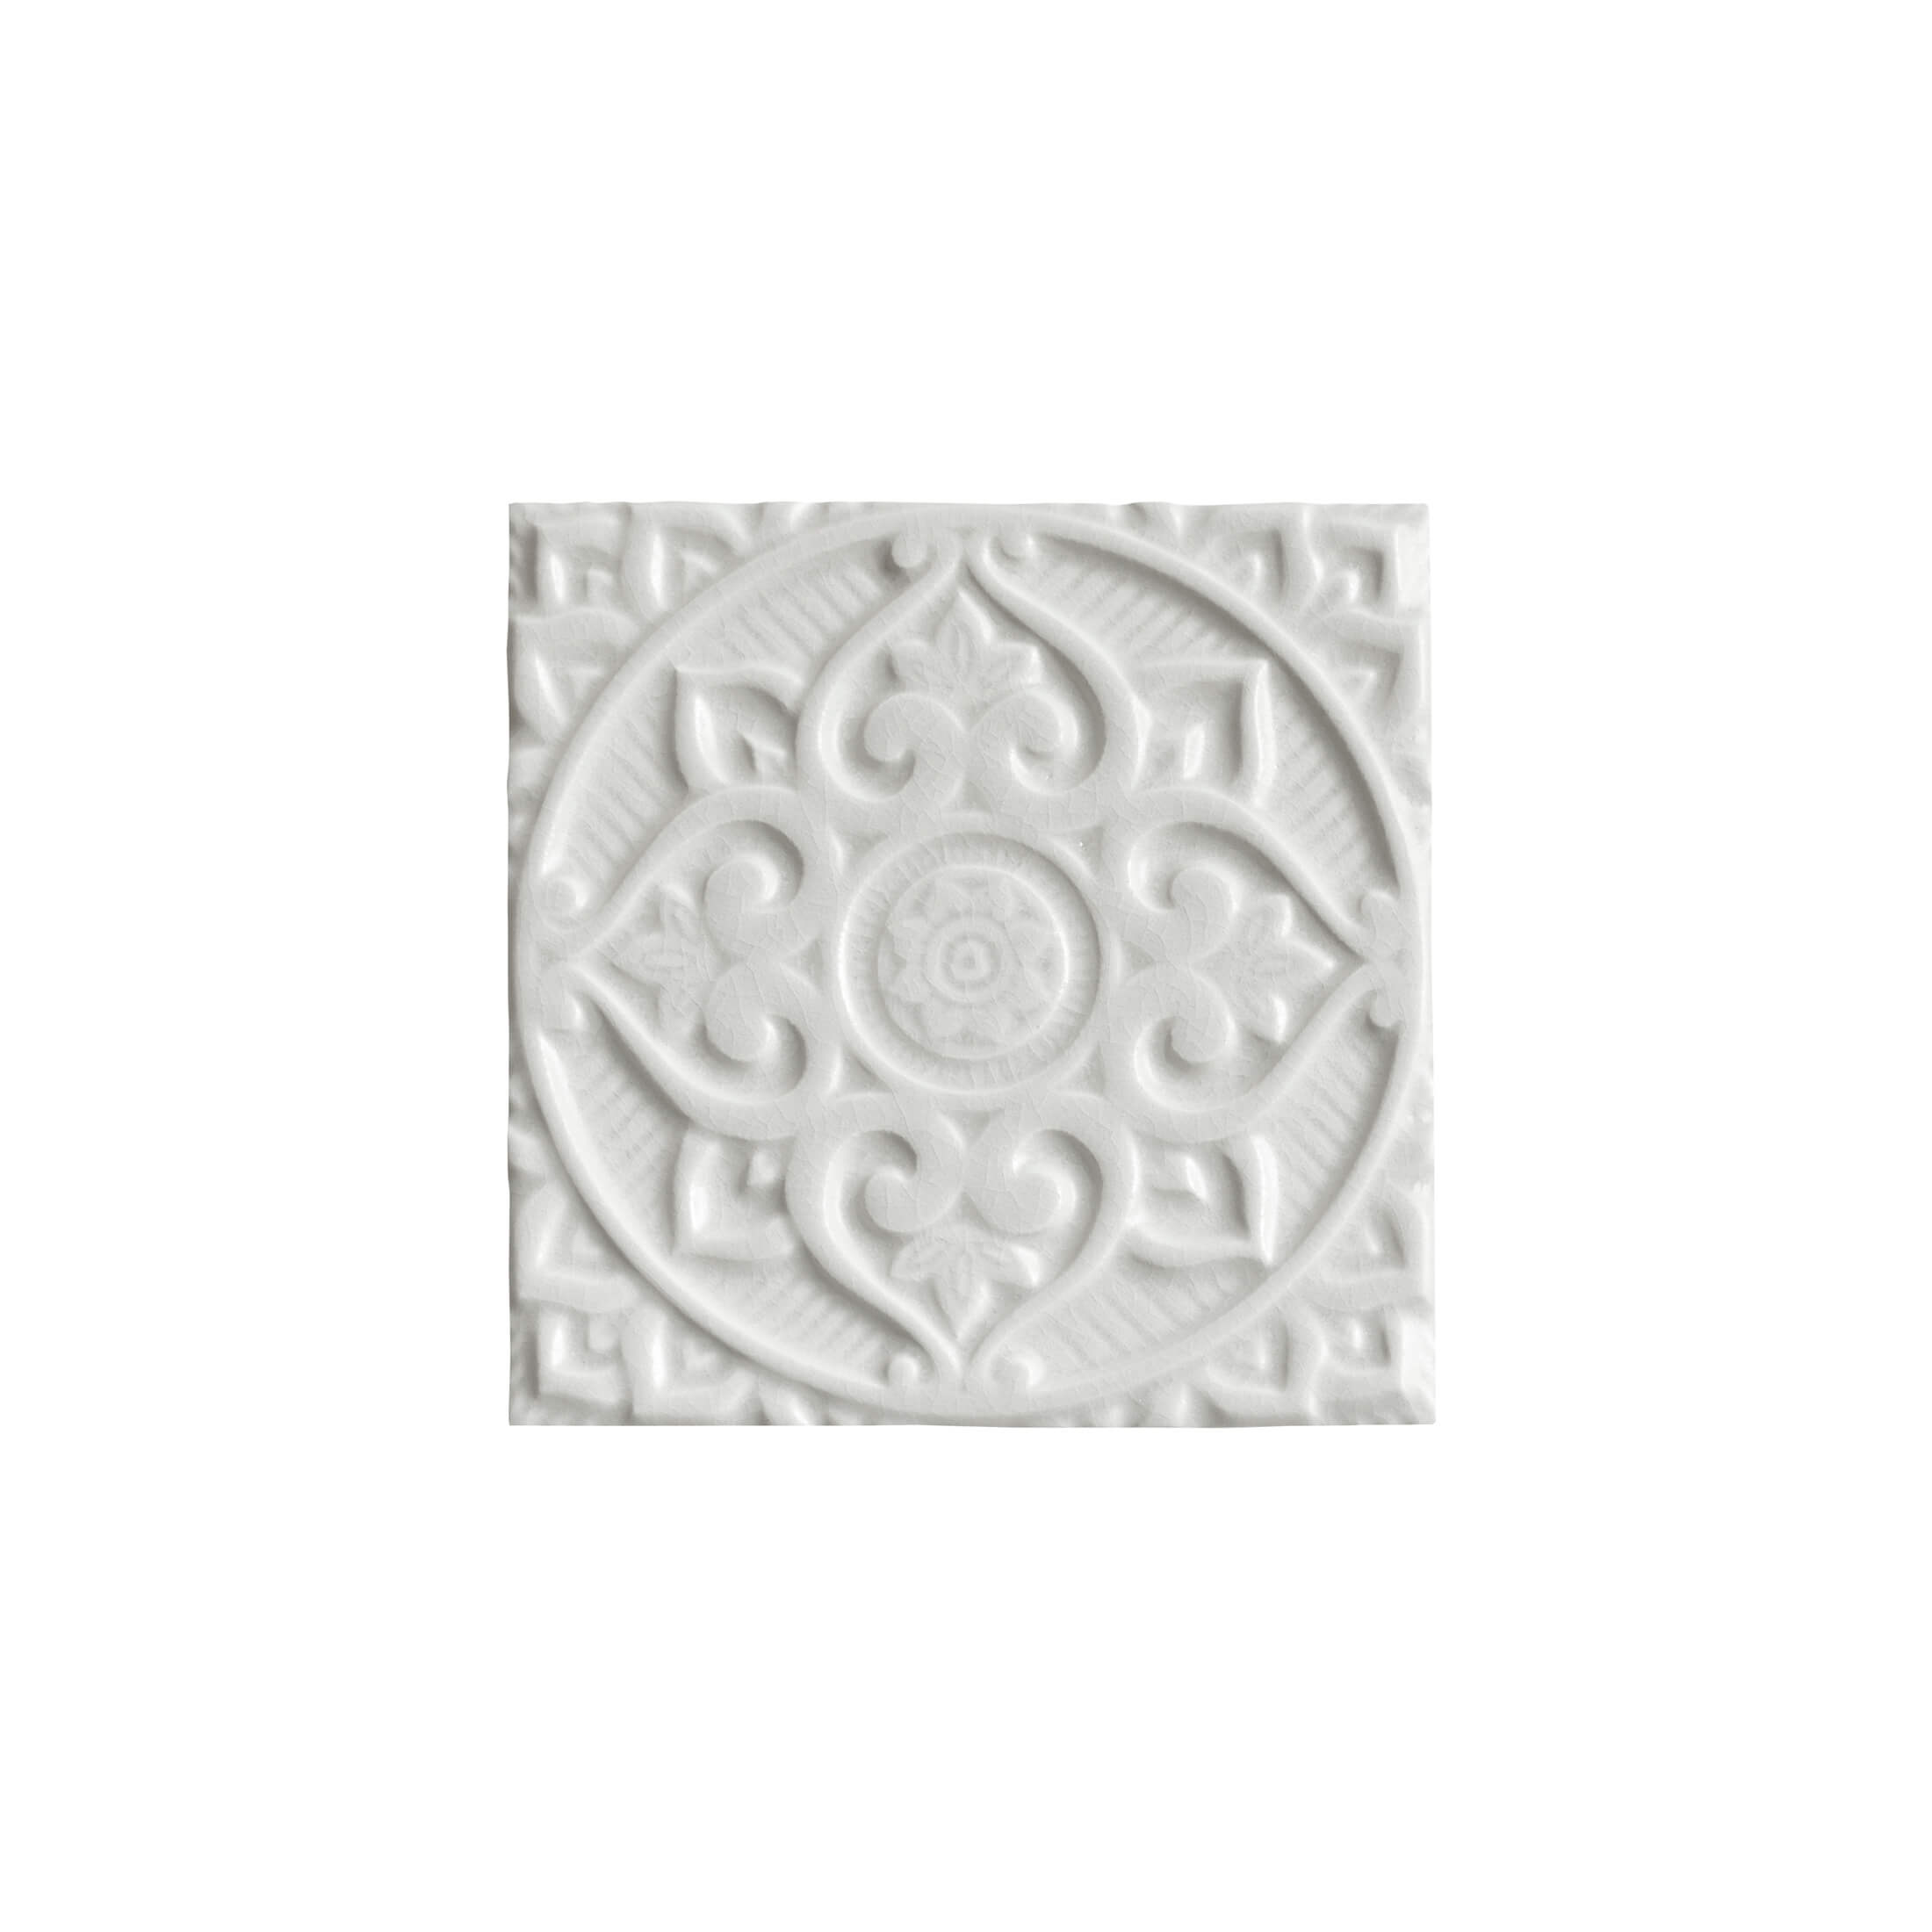 ADEH4016 - RELIEVE MANDALA ENERGY - 15 cm X 15 cm